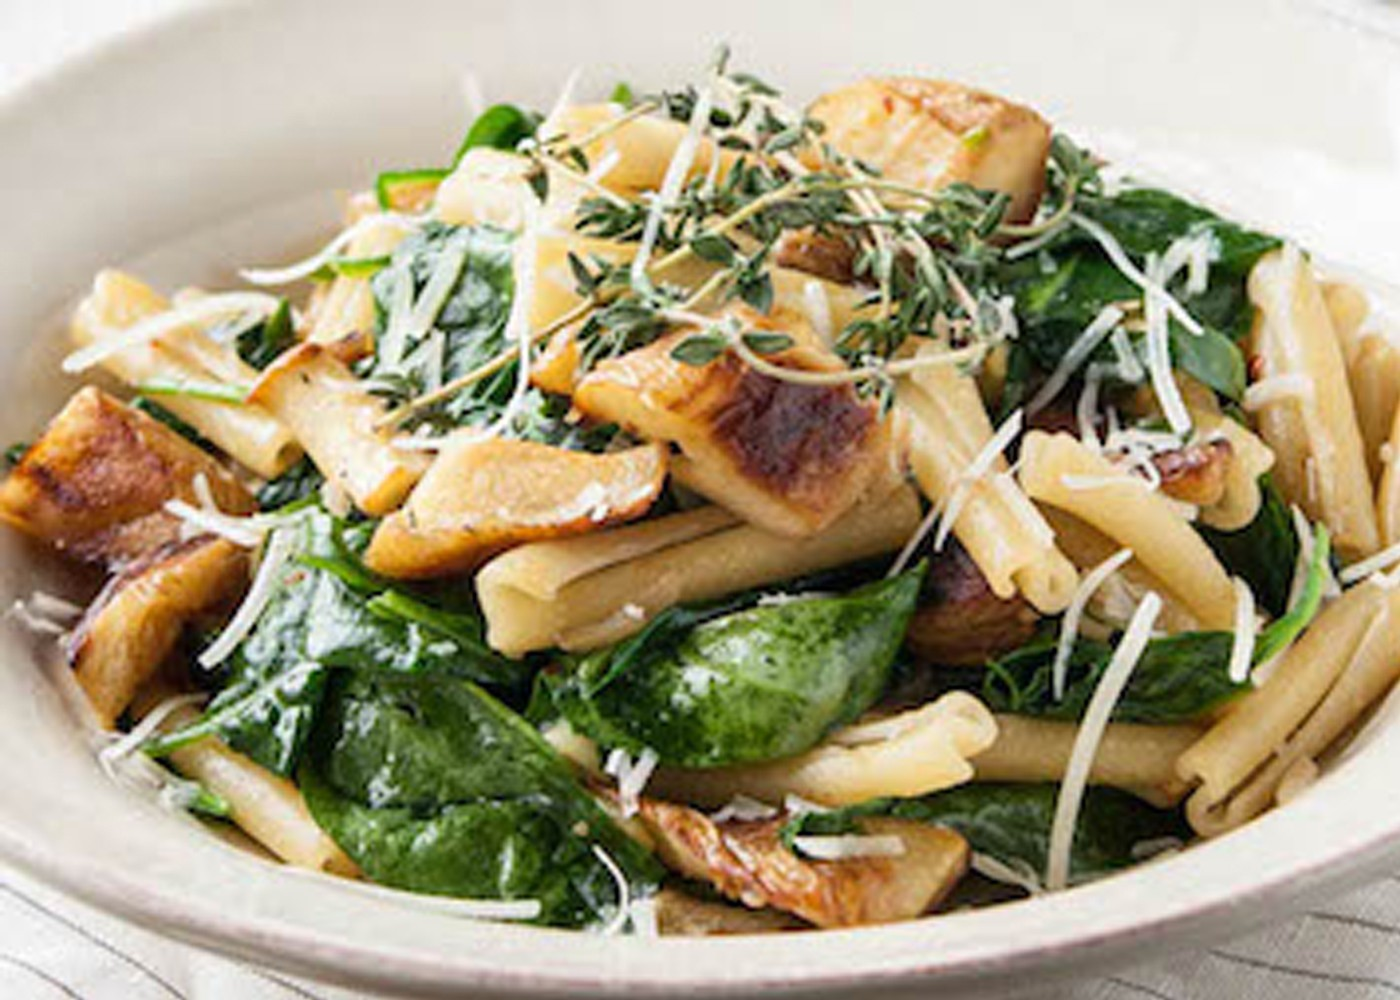 caramelized parsnip salad in a bowl